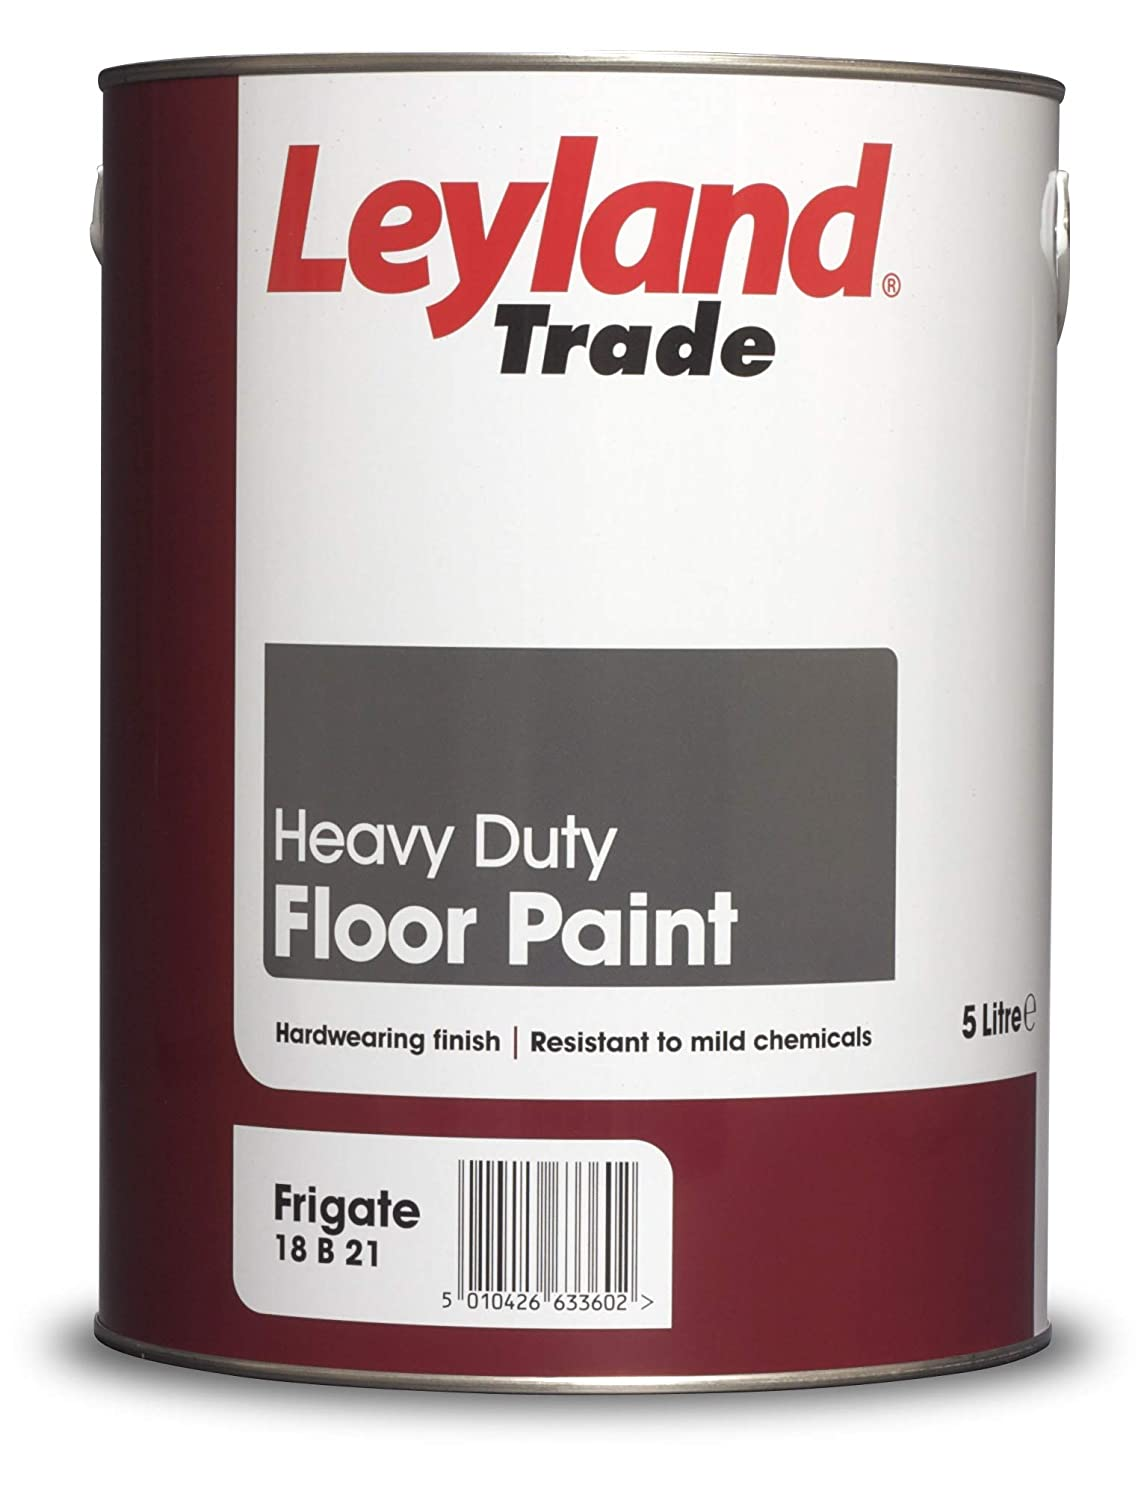 Leyland Trade 264615 Heavy Duty Floor Paint, Frigate, 5 PPG